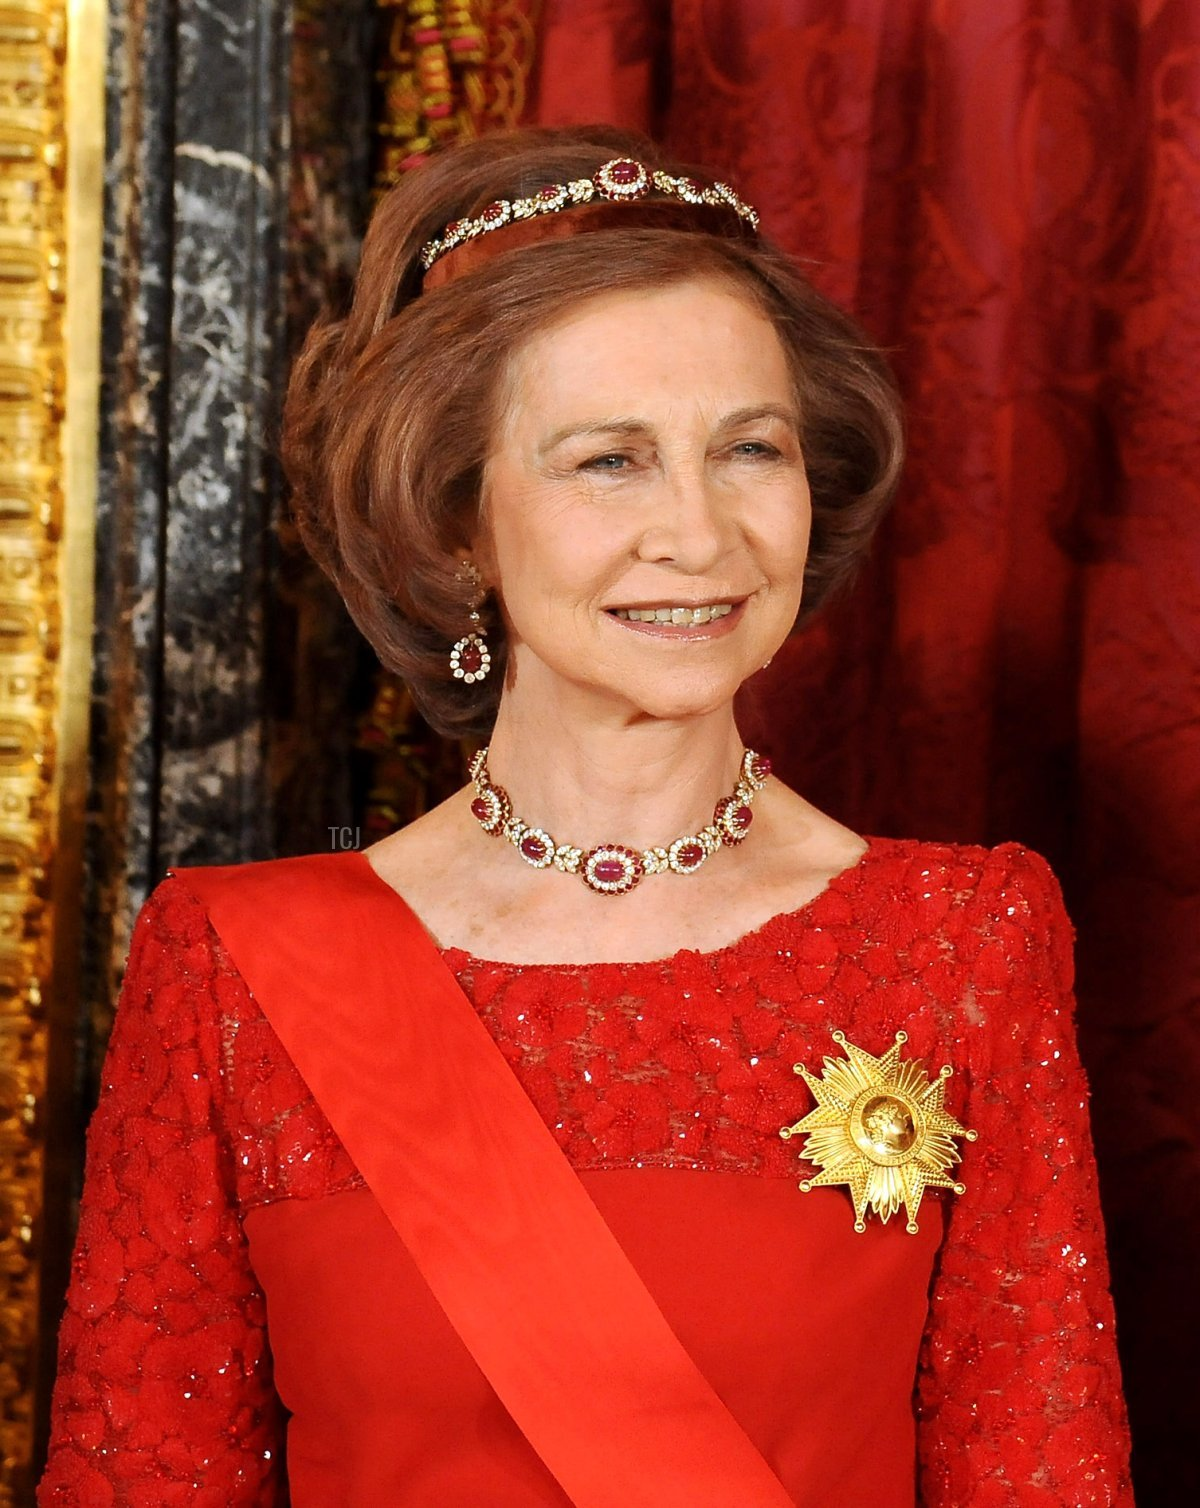 Queen Sofia of Spain attends a state dinner in honor of the President of France, April 2009